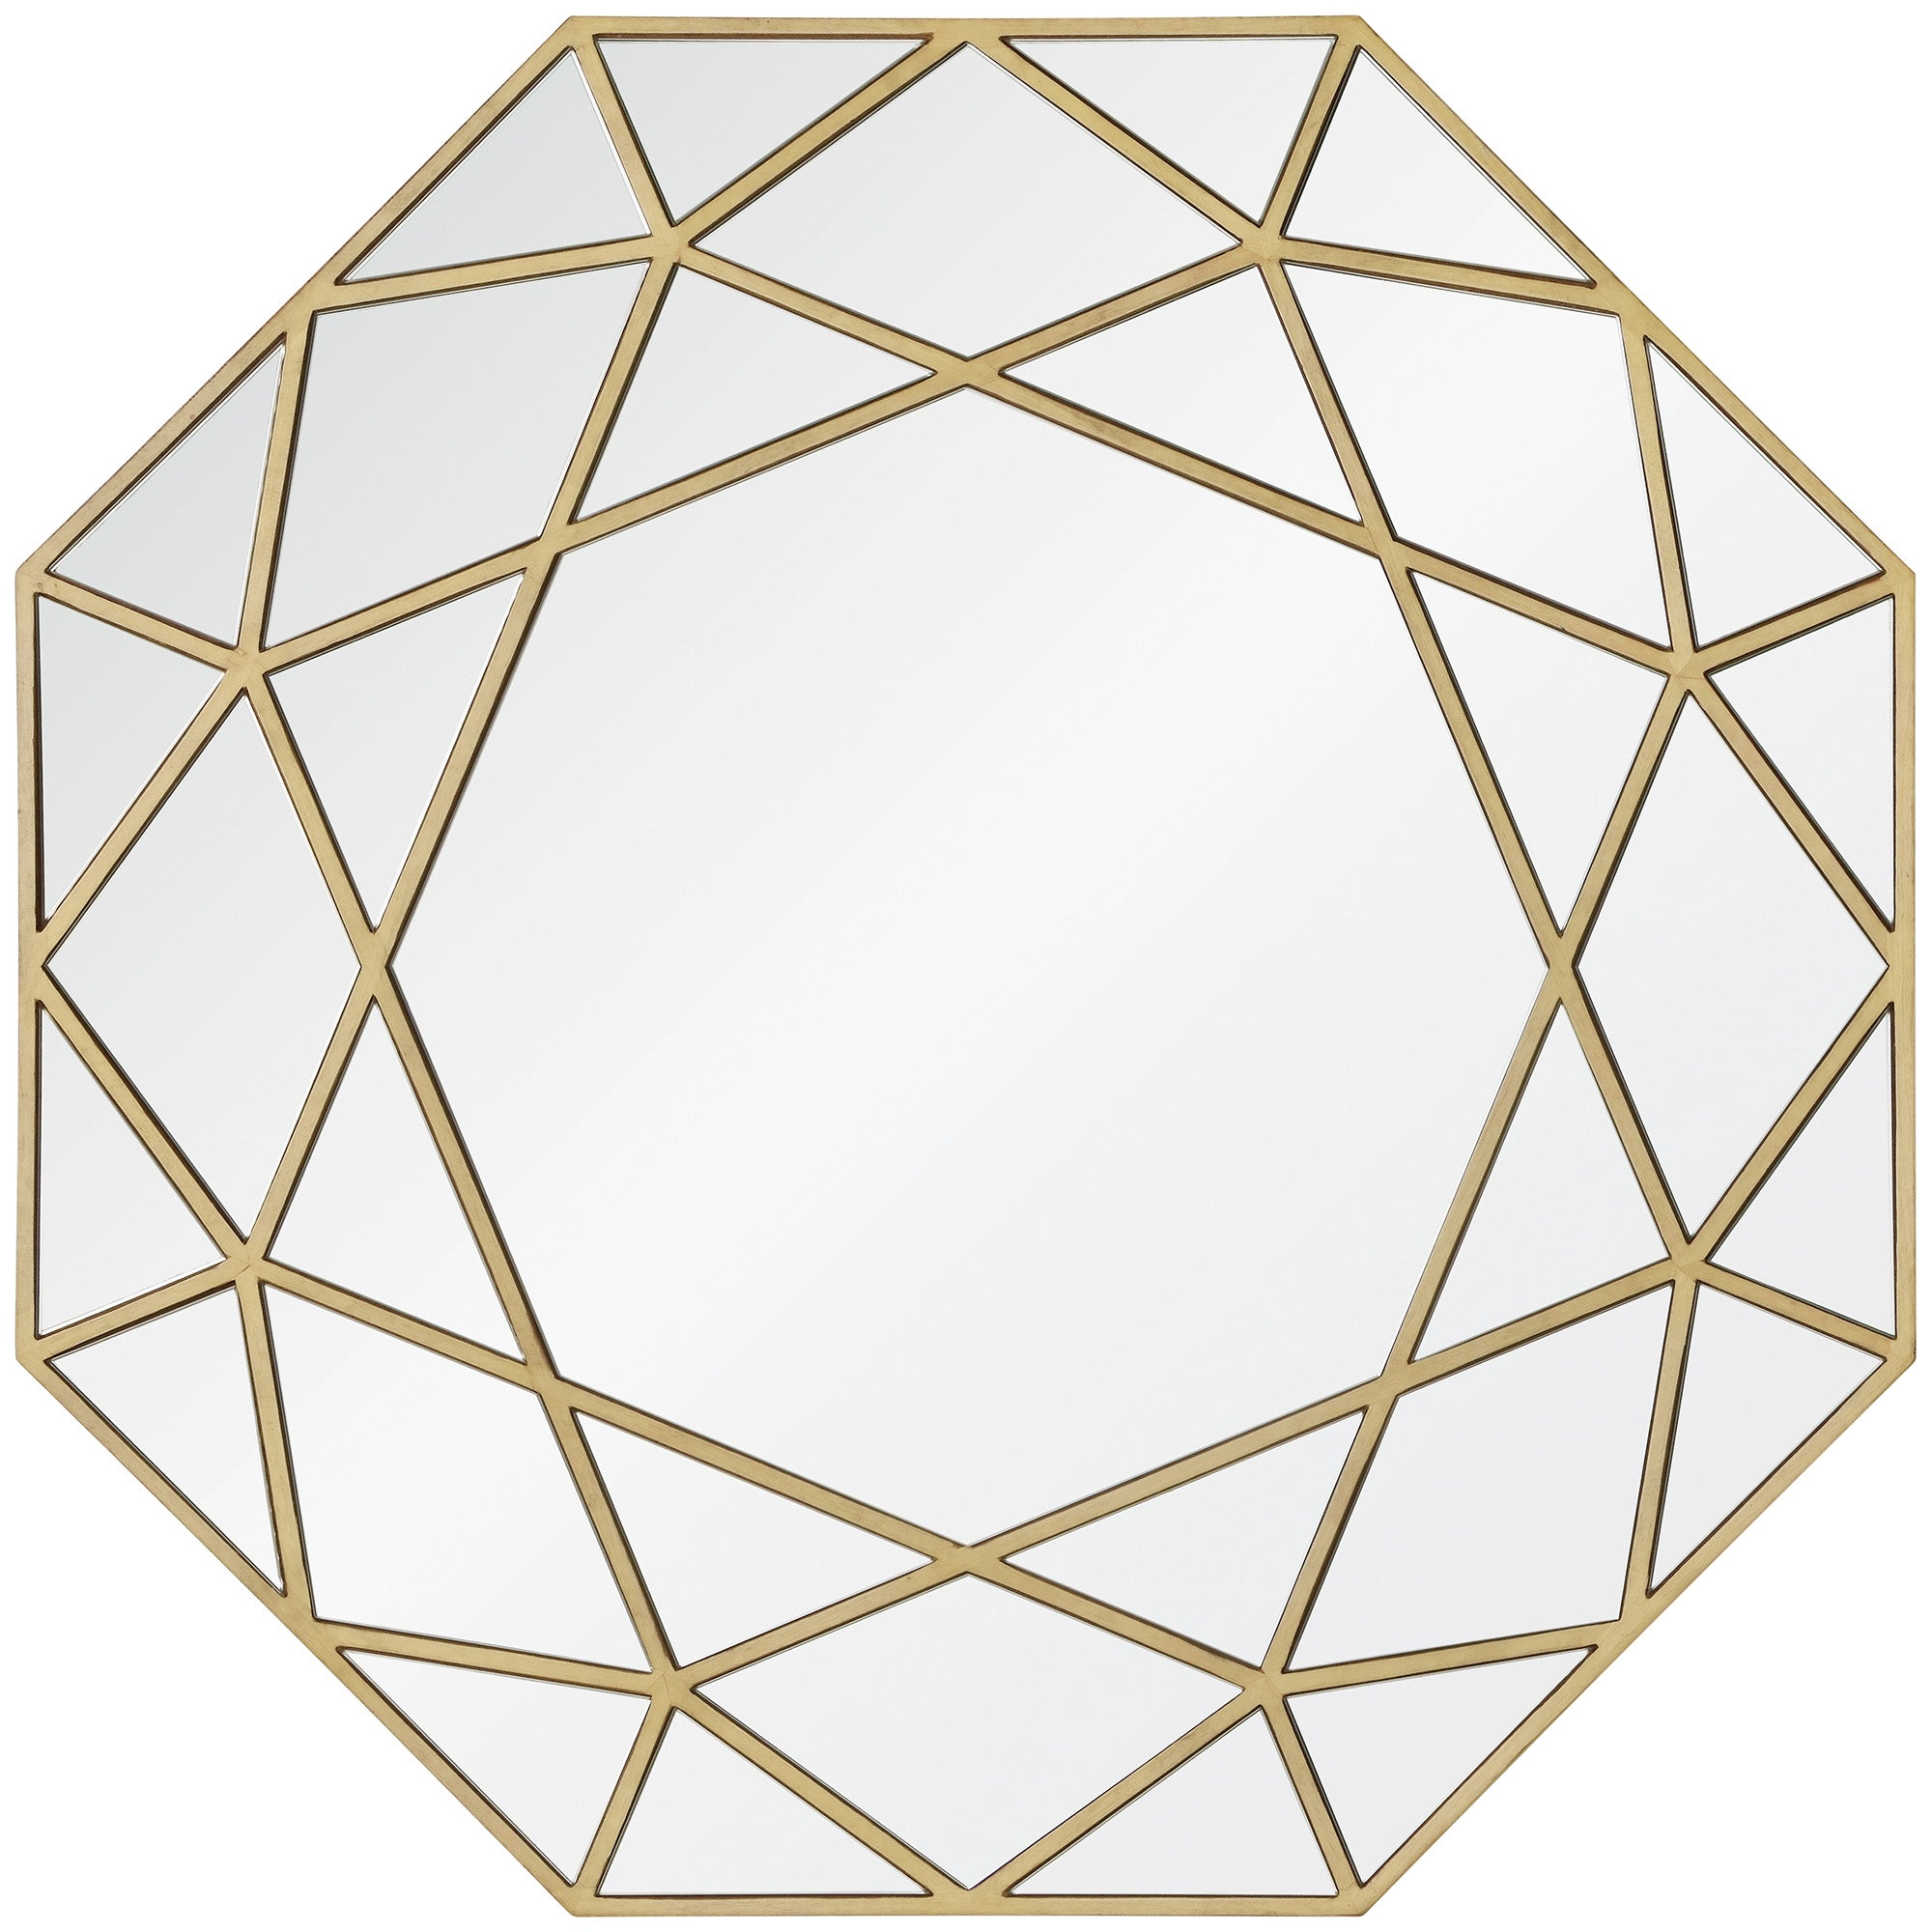 Deloro Wall Mirror